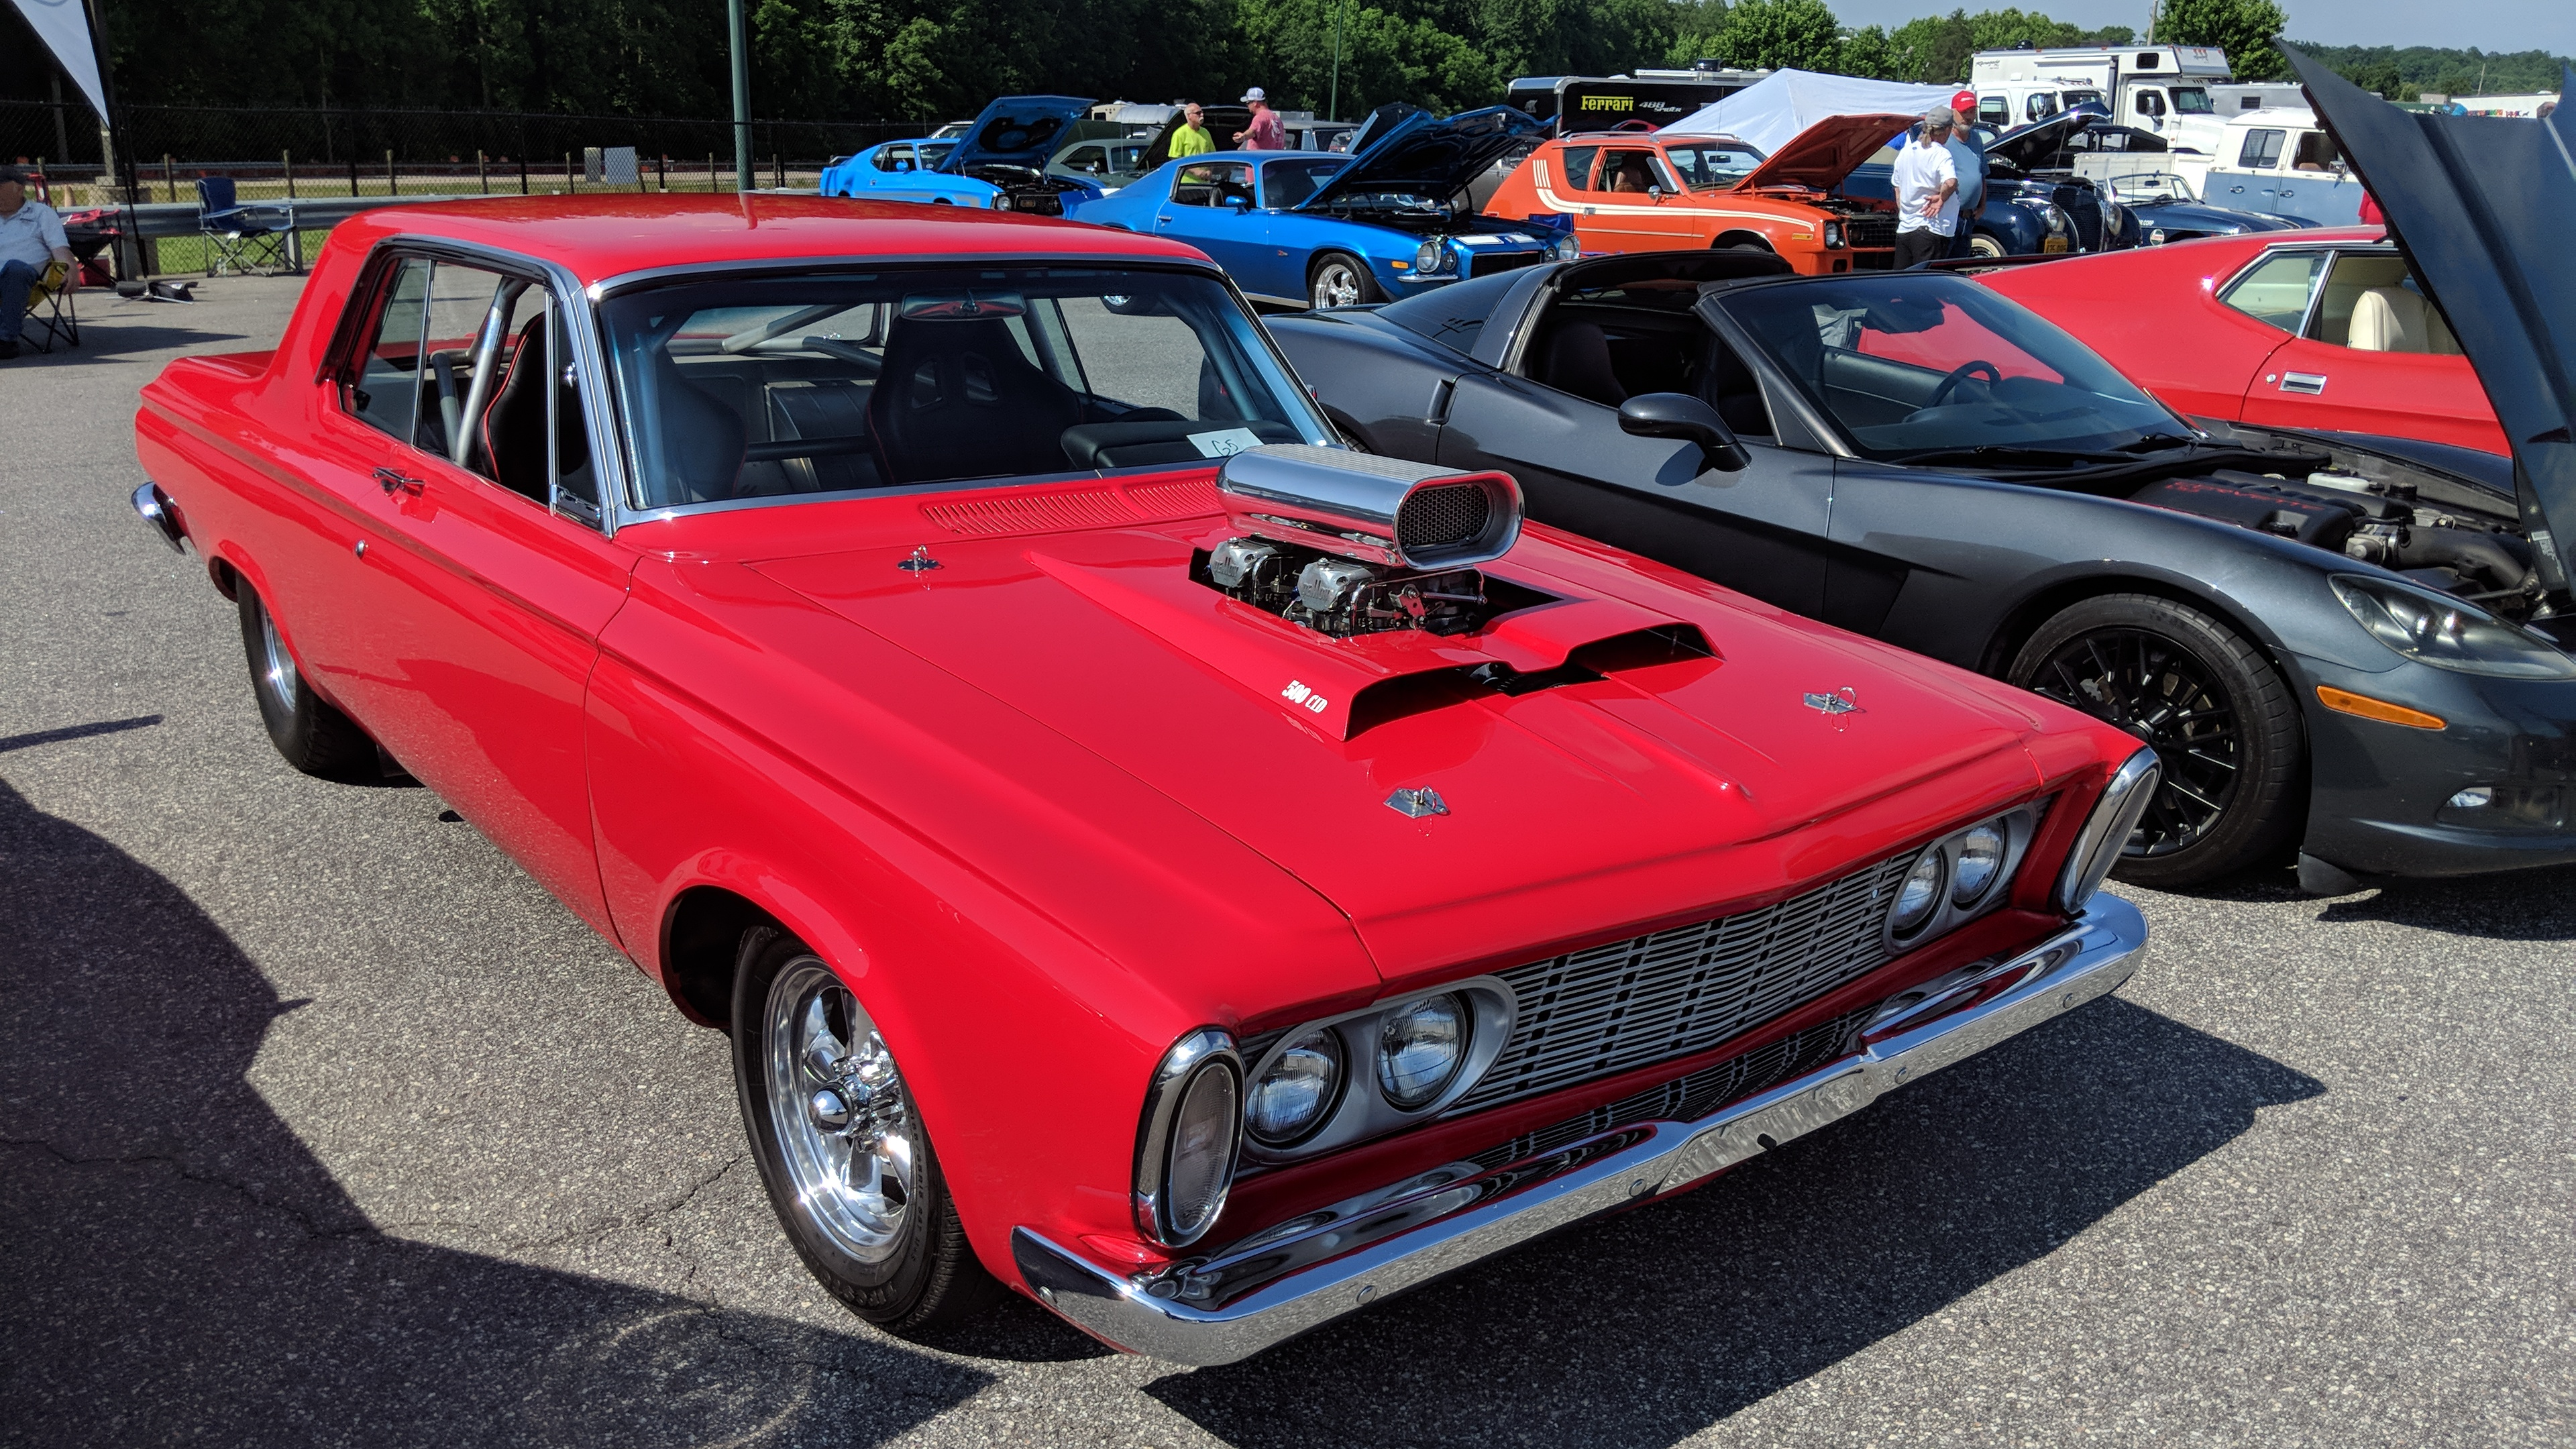 File DCHS Car Show A Celebration Of Classic Cars Community - Classic car show near me 2018